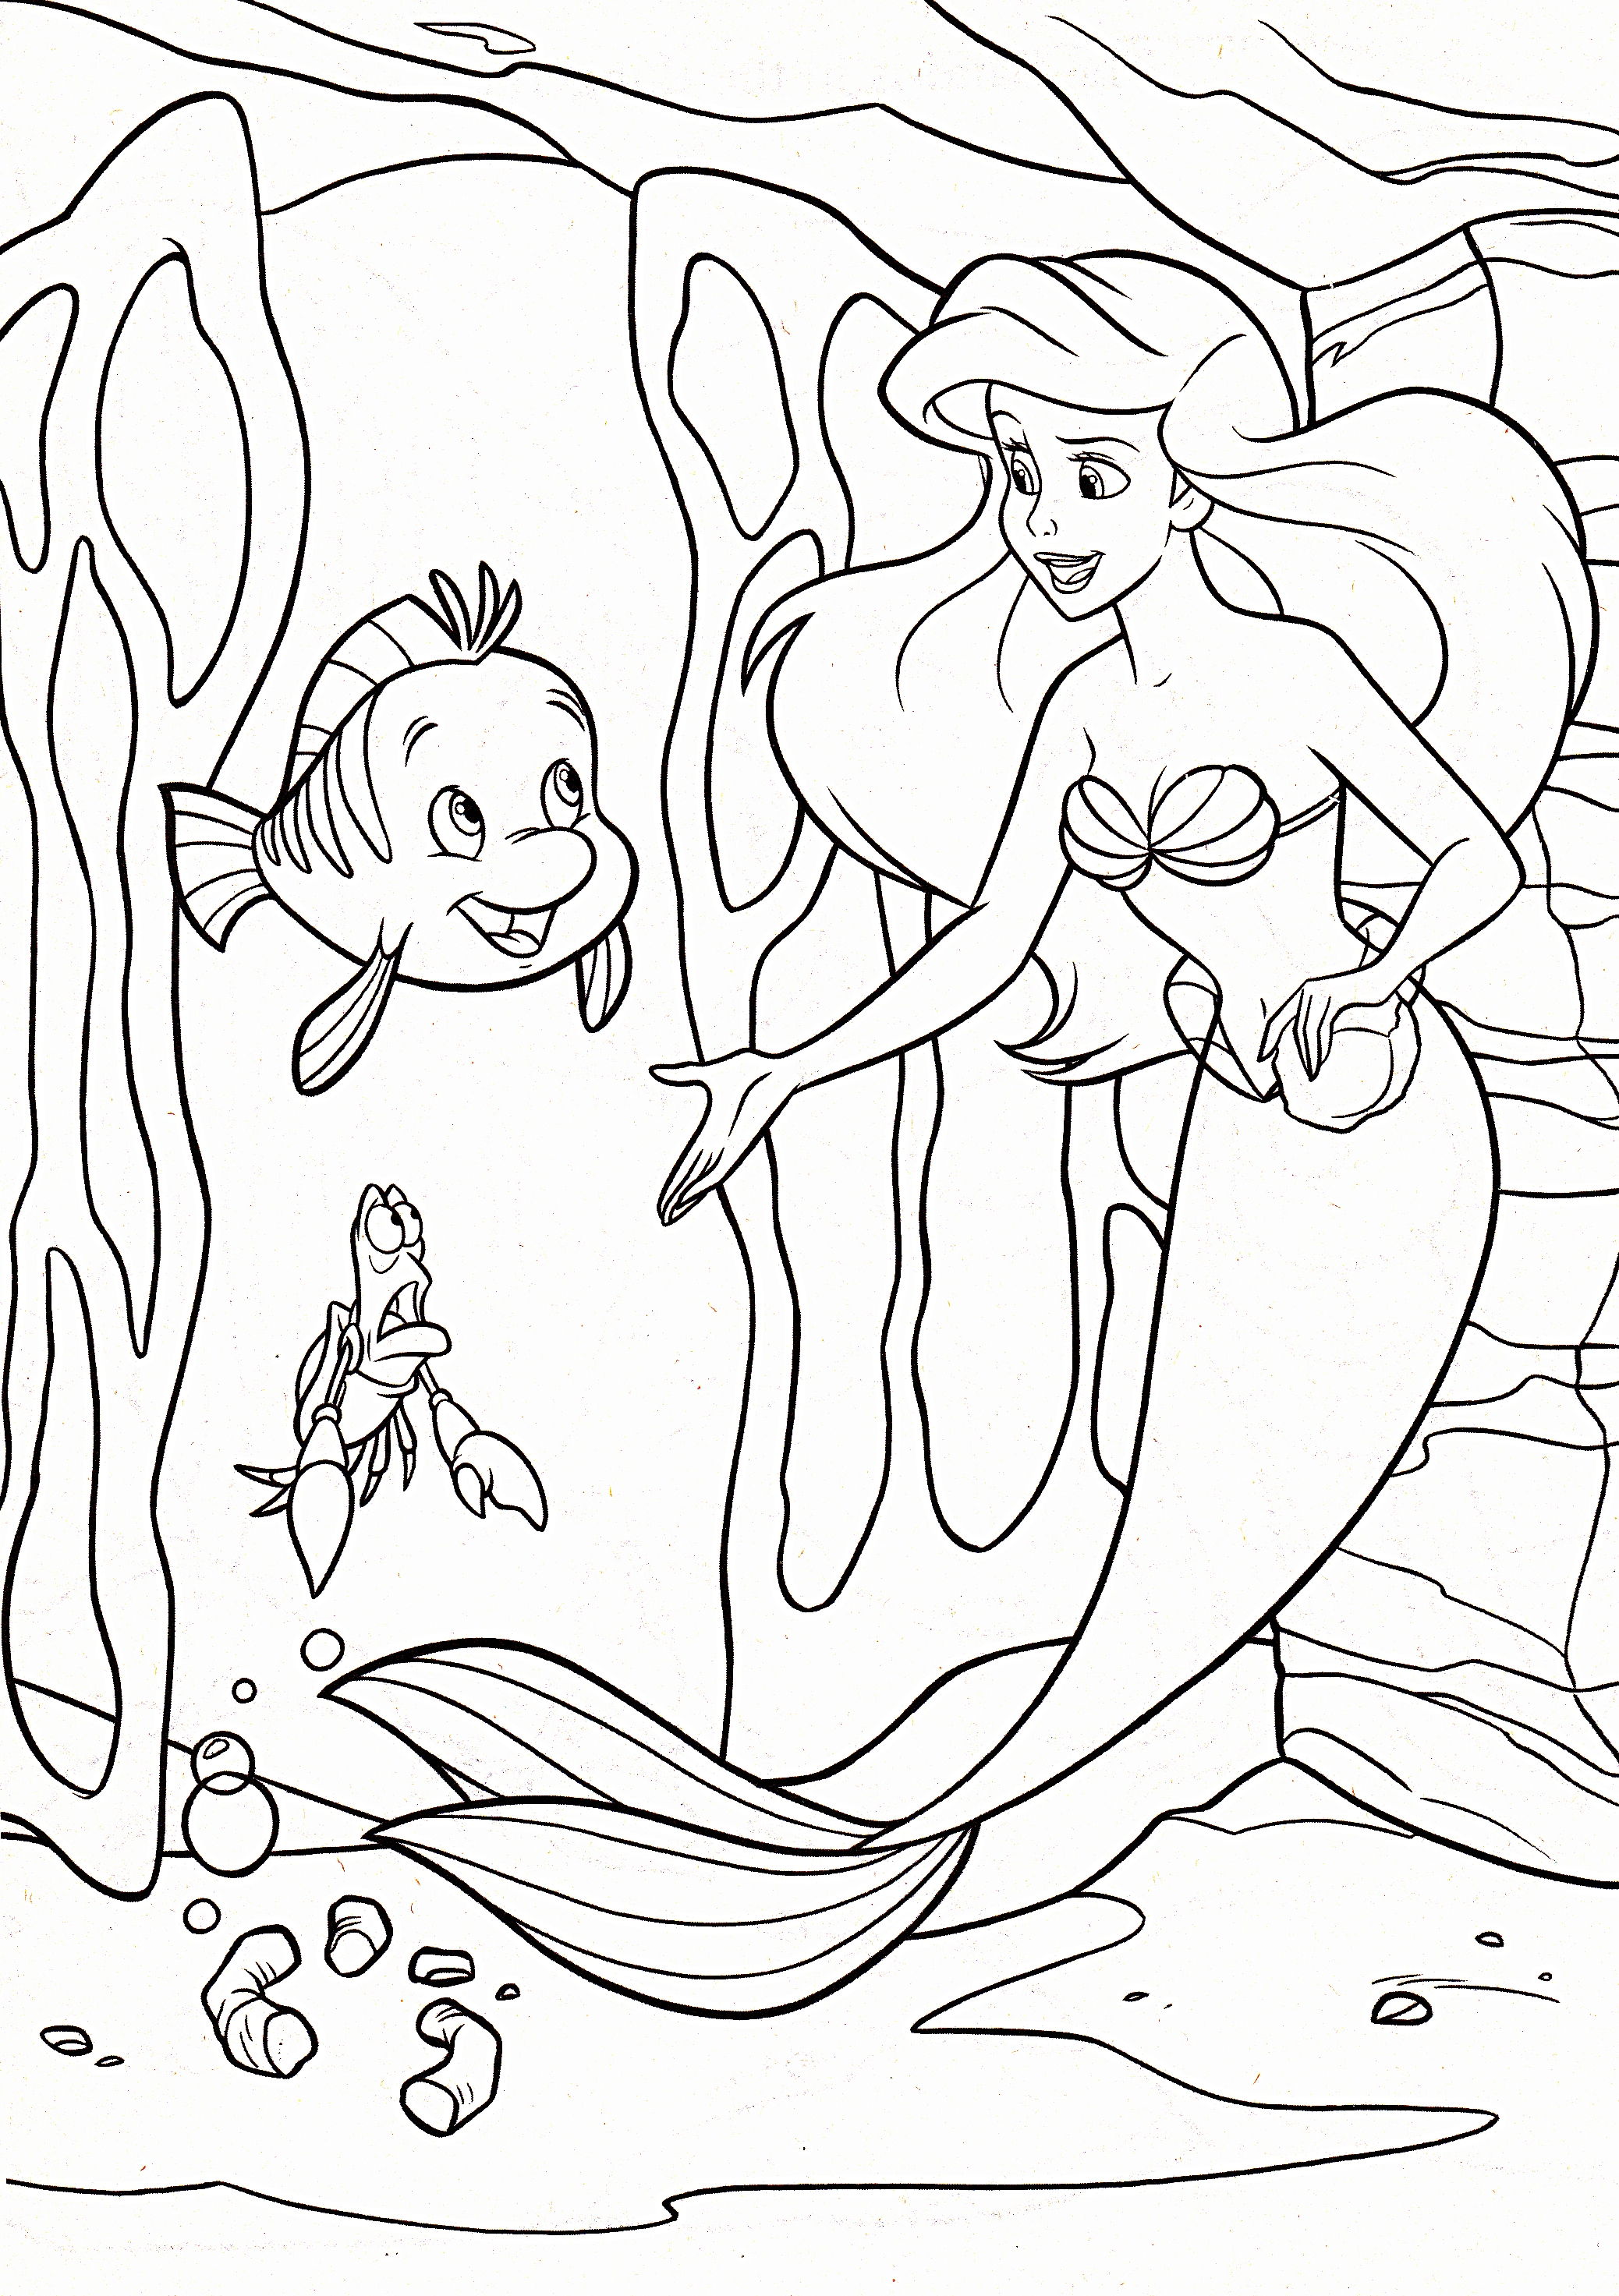 disney princess characters coloring pages - photo#36